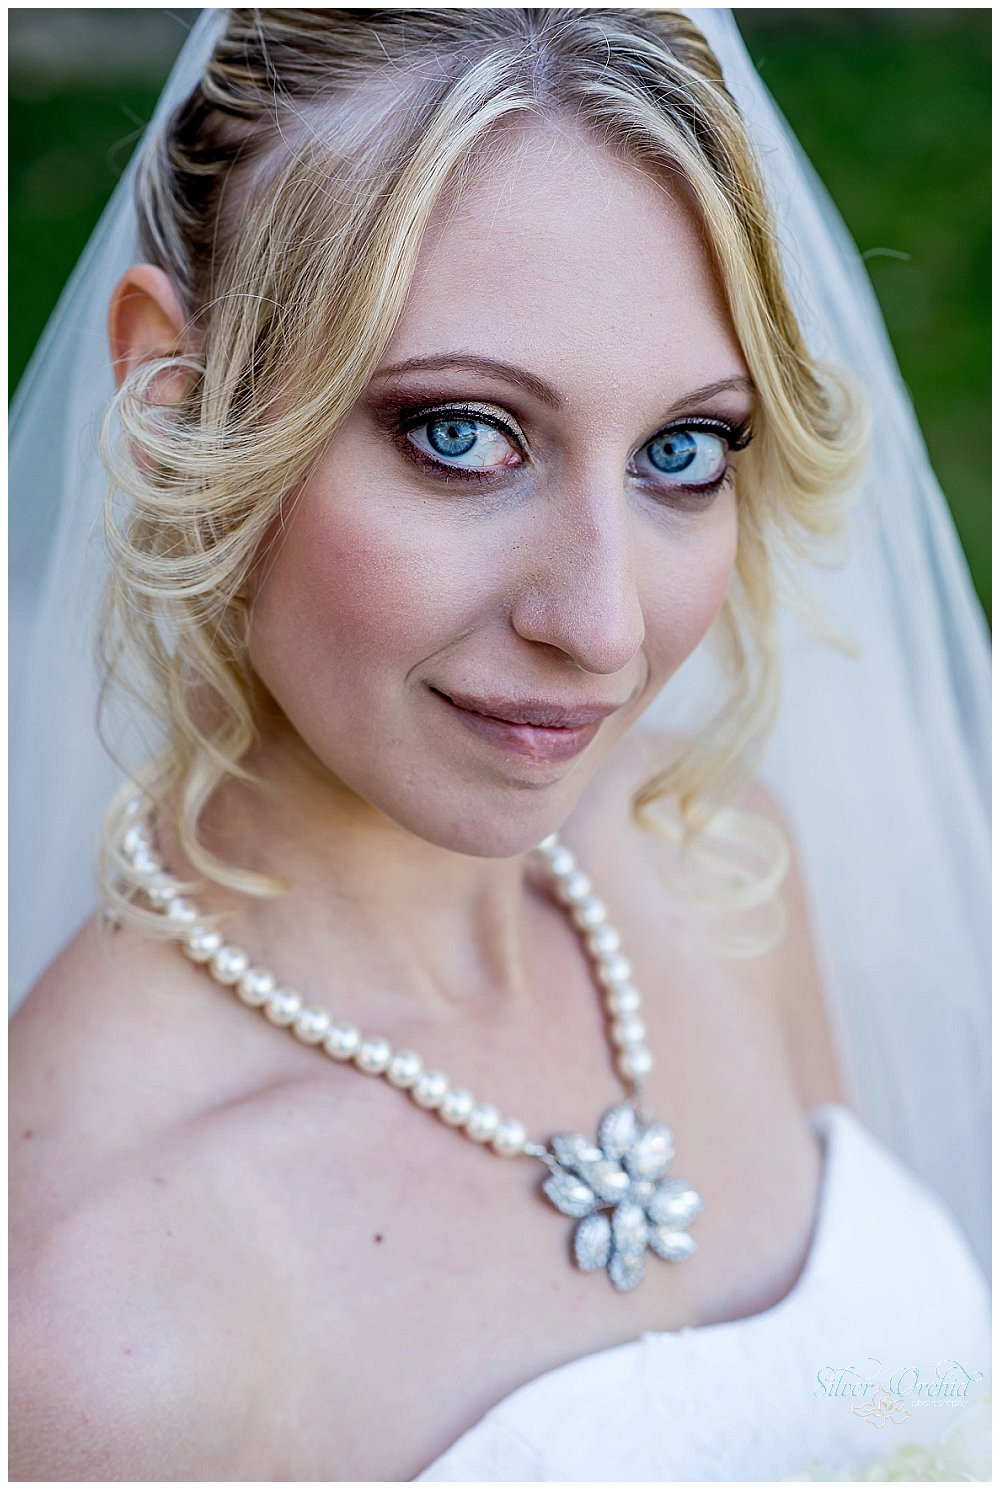 ©Silver Orchid Photography_wedding photography_CantandoBrooksideMacungie_silverorchidphotography.com_0006.jpg